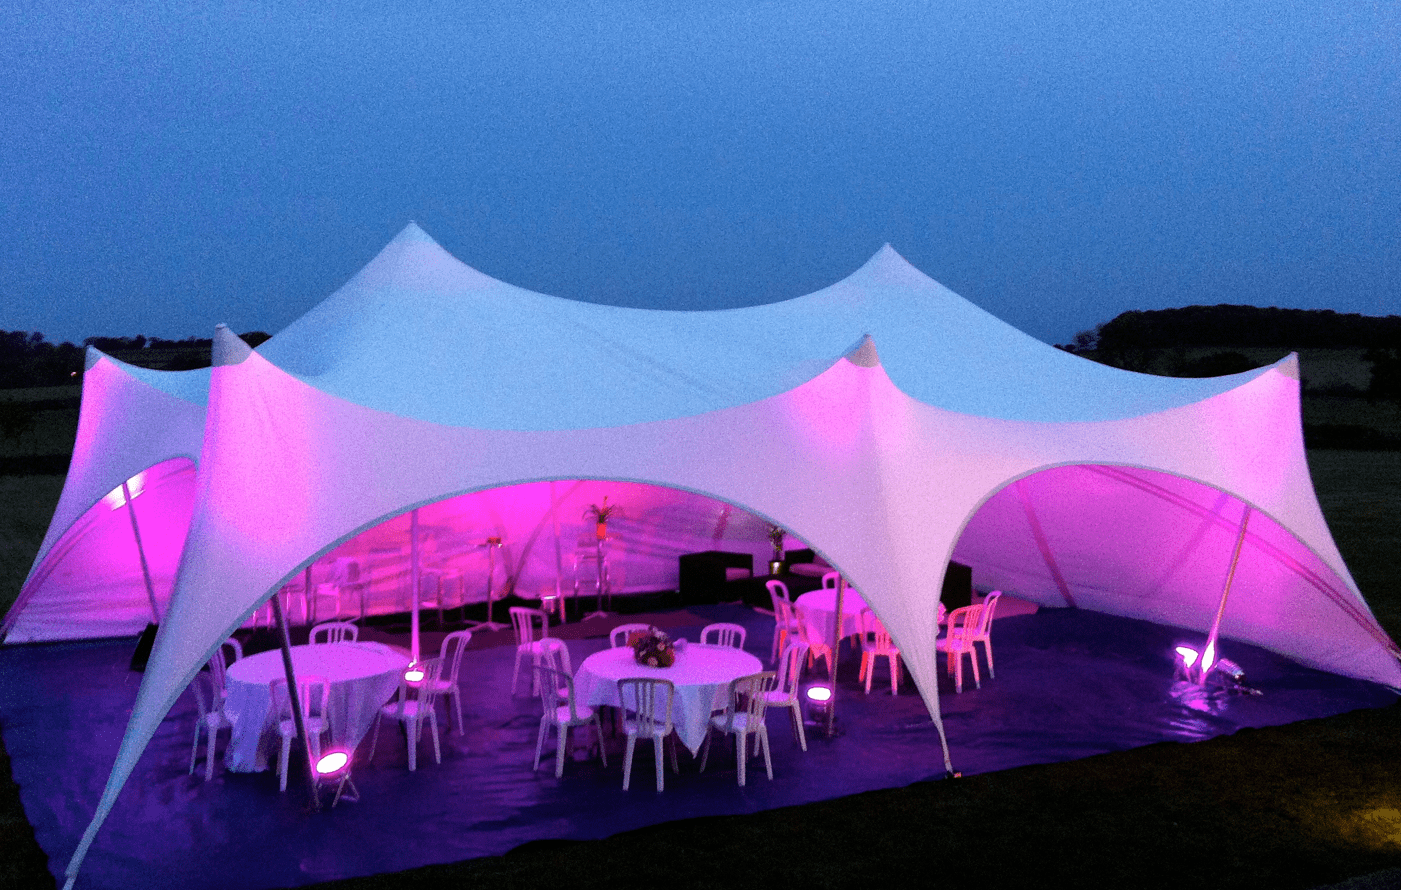 50 % Off-Buy Party Tent   Outdoor White Party Tents for Sale USA   Party  tent, Party tent rentals, Tent